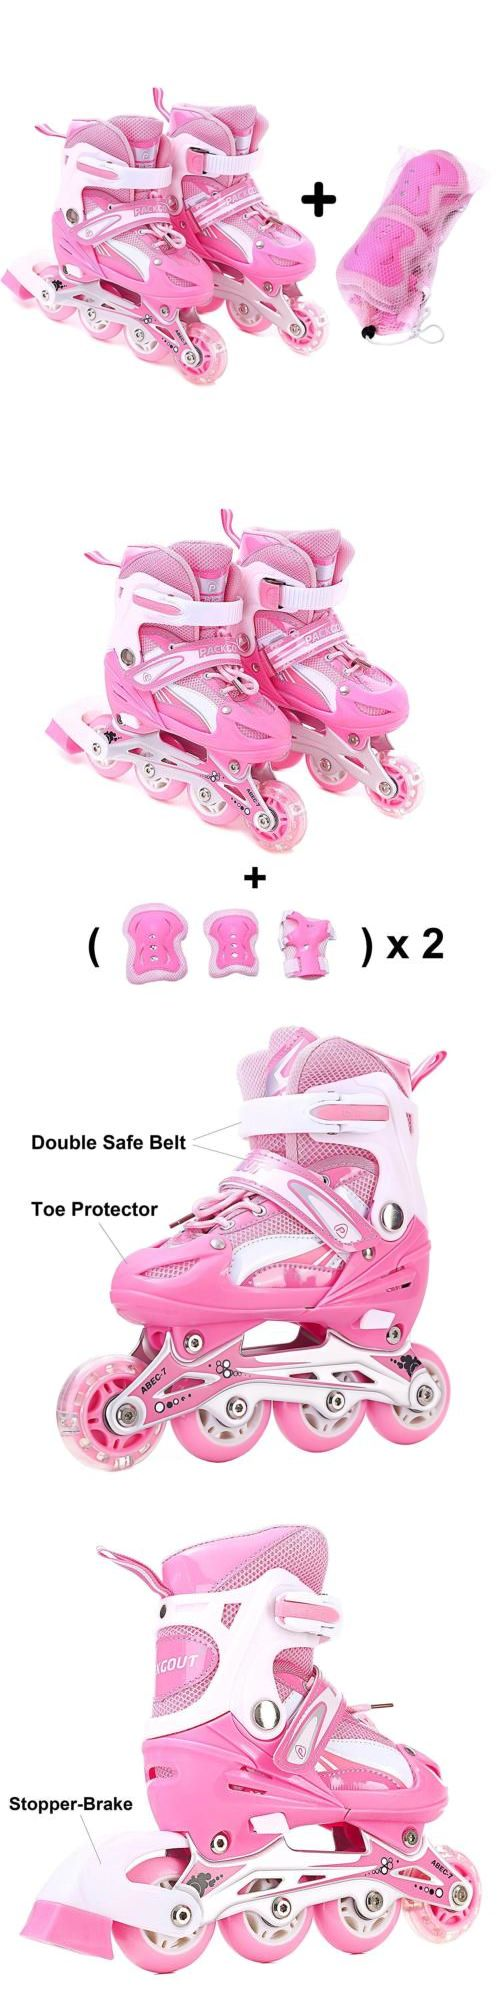 Youth 47345: Girls Inline Skates Adjustable Rollerblades For Kids S Size With Guard... -> BUY IT NOW ONLY: $57.63 on eBay!